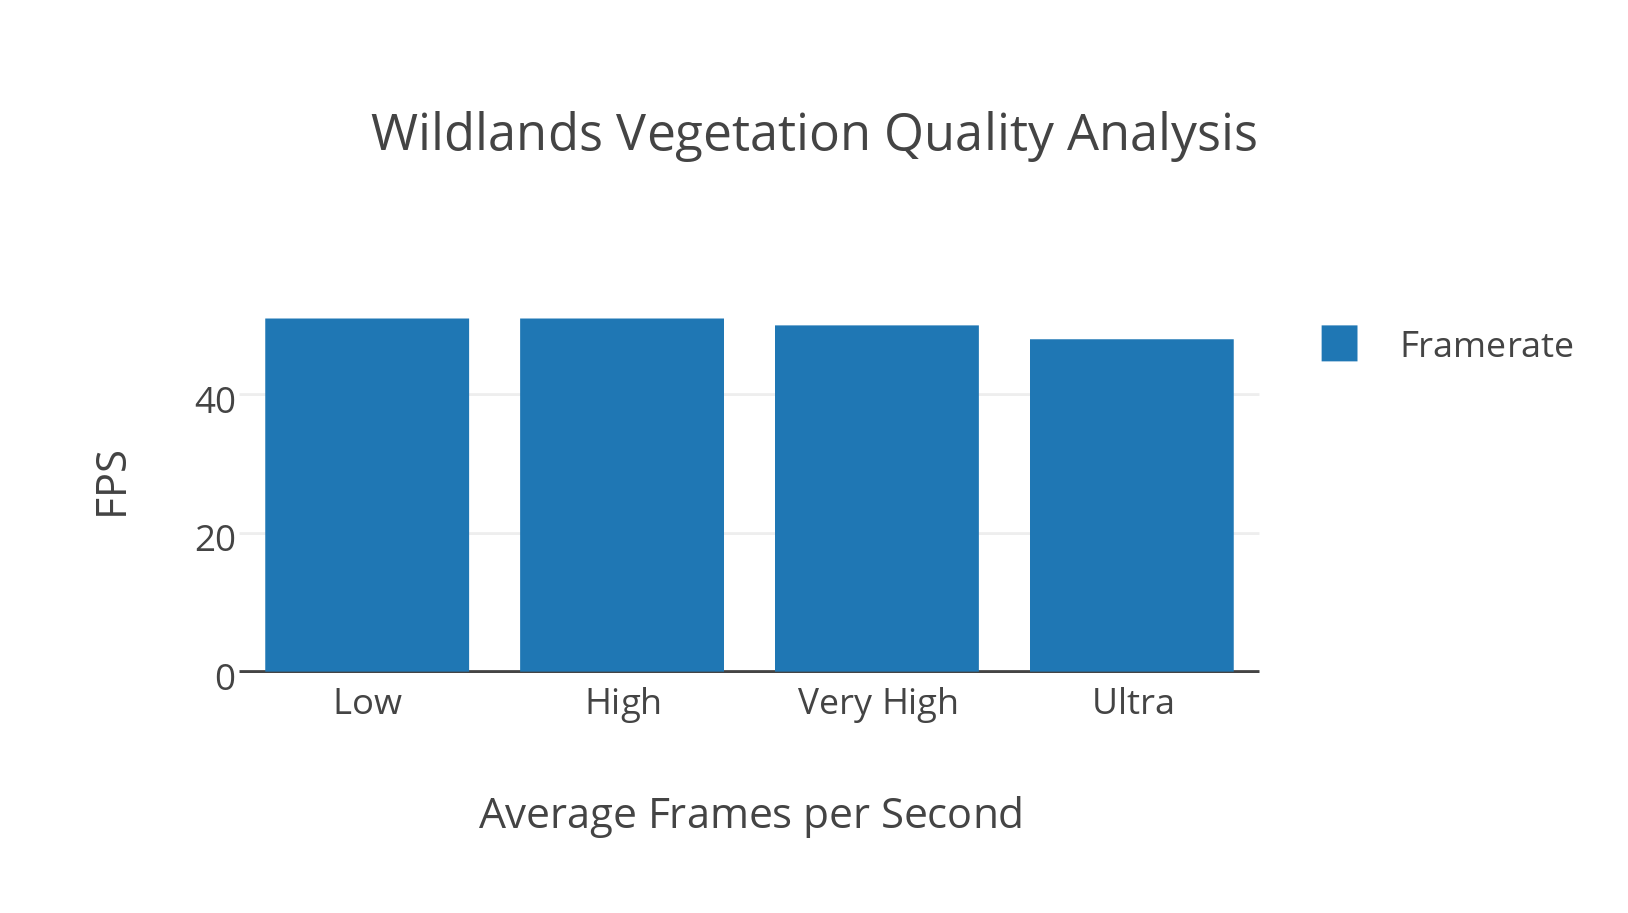 Wildlands Vegetation Quality Analysis